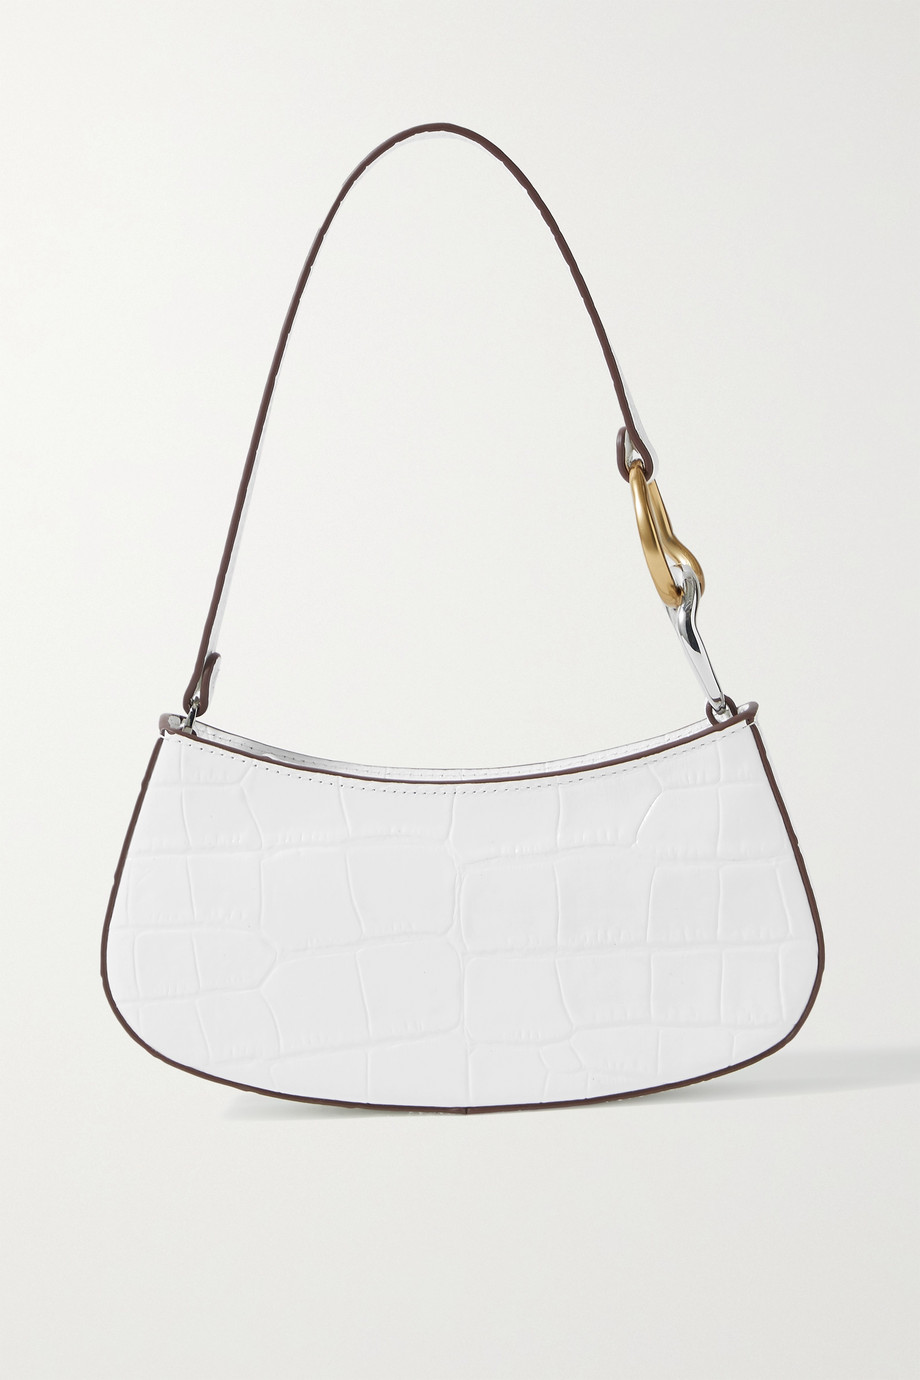 STAUD Ollie croc-effect leather shoulder bag